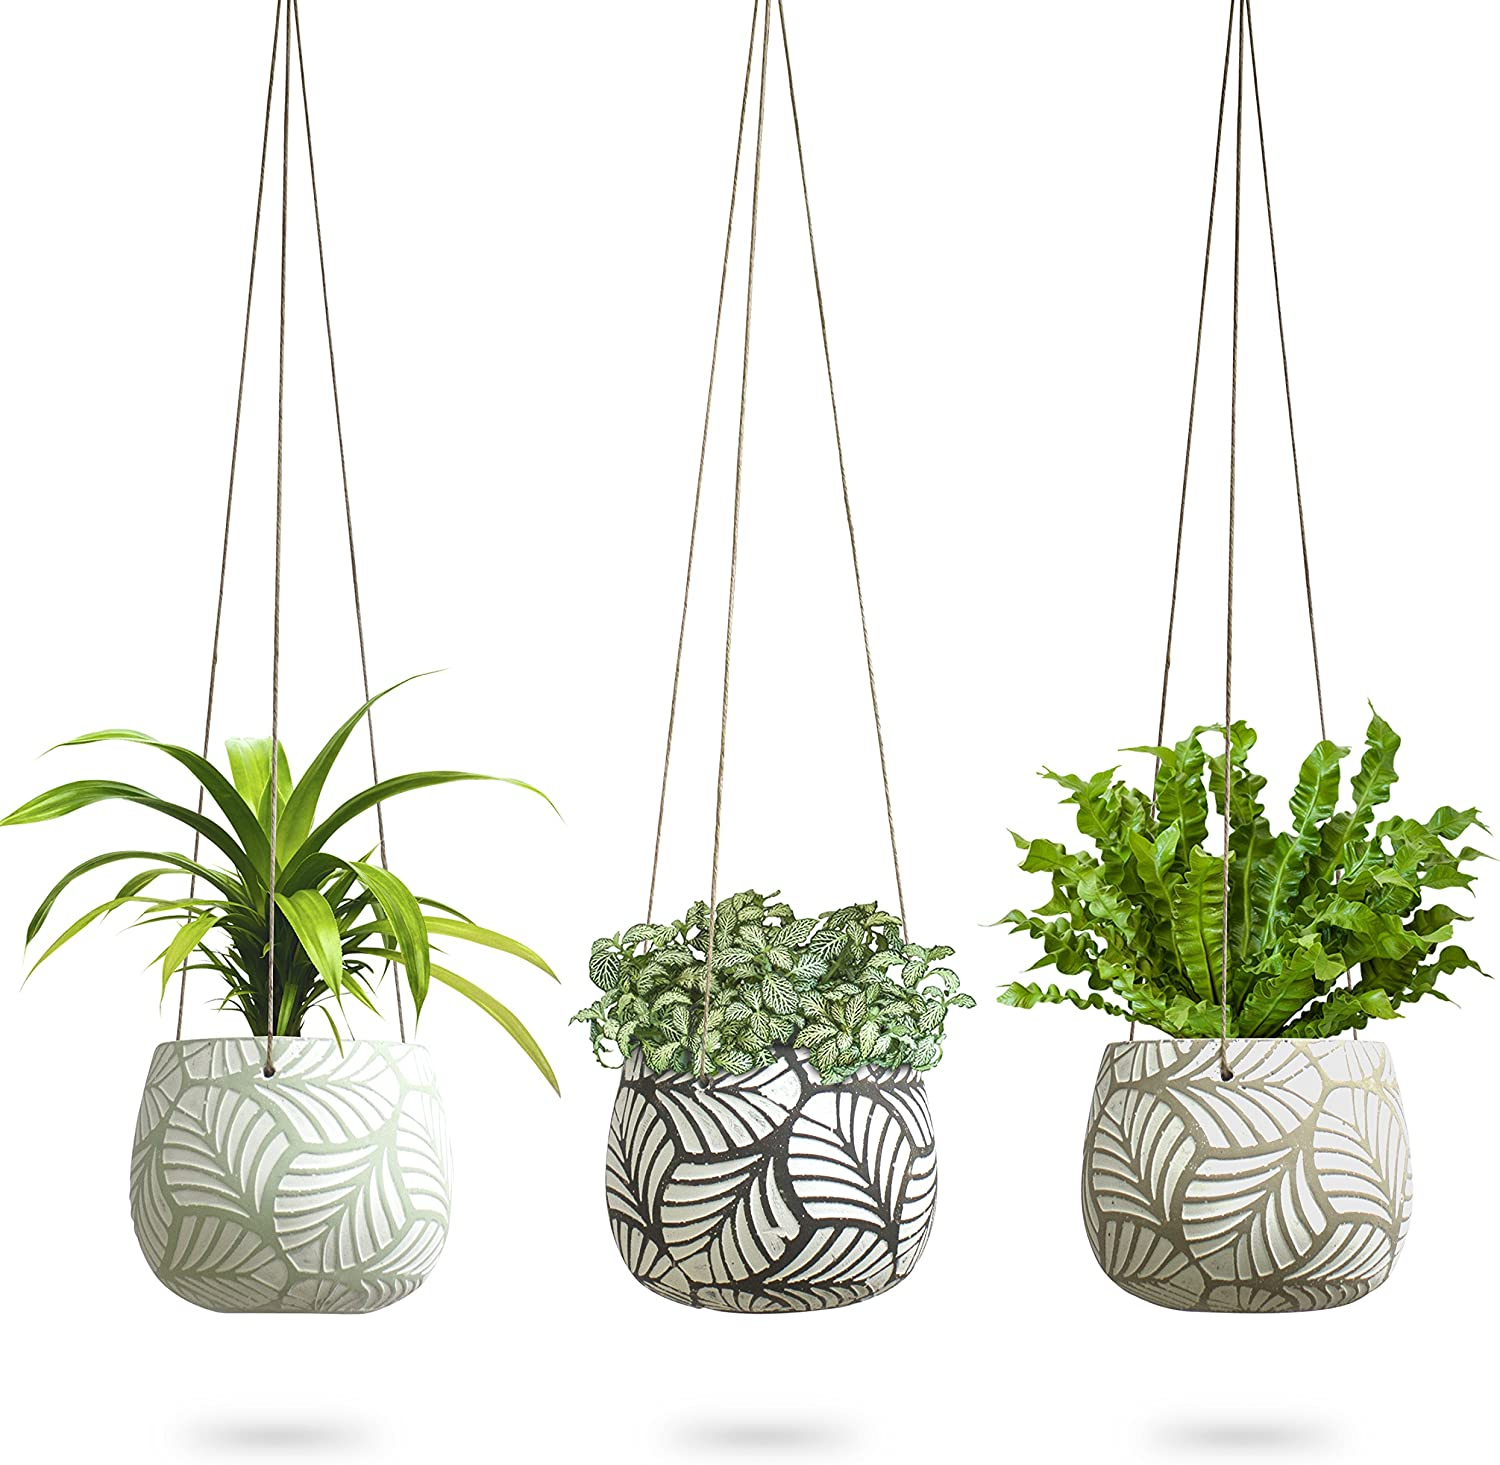 3 Pack Hanging Planter for Indoor Plants, White Concrete Pots, Round Air Succulent Holder Container, Cactus Pot with Rope Hanger 23 Bees (3, Leaves of Nature)